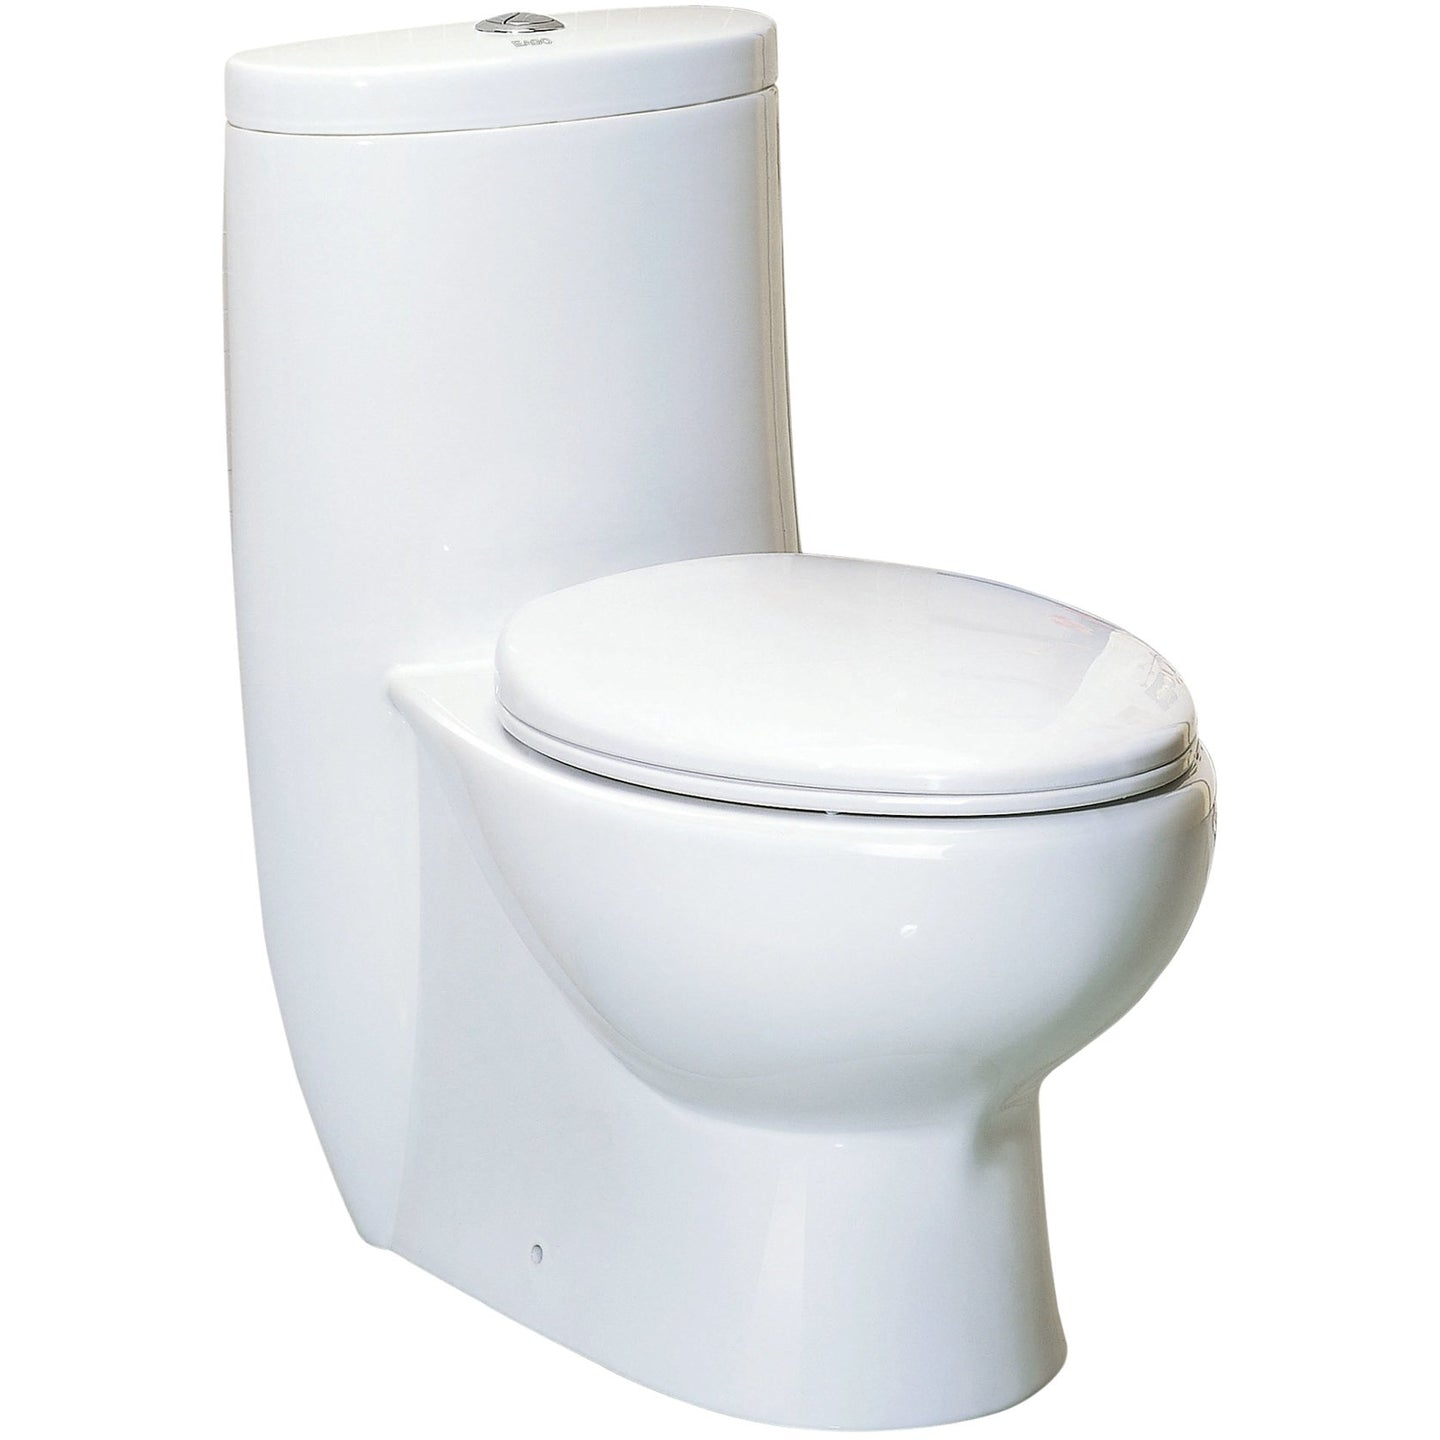 Whitehaus Magic Flush Eco-Friendly One Piece Toilet with a Siphonic Action Dual Flush System, Elongated Bowl, 1.6/1.1 GPF and WaterSense Certified